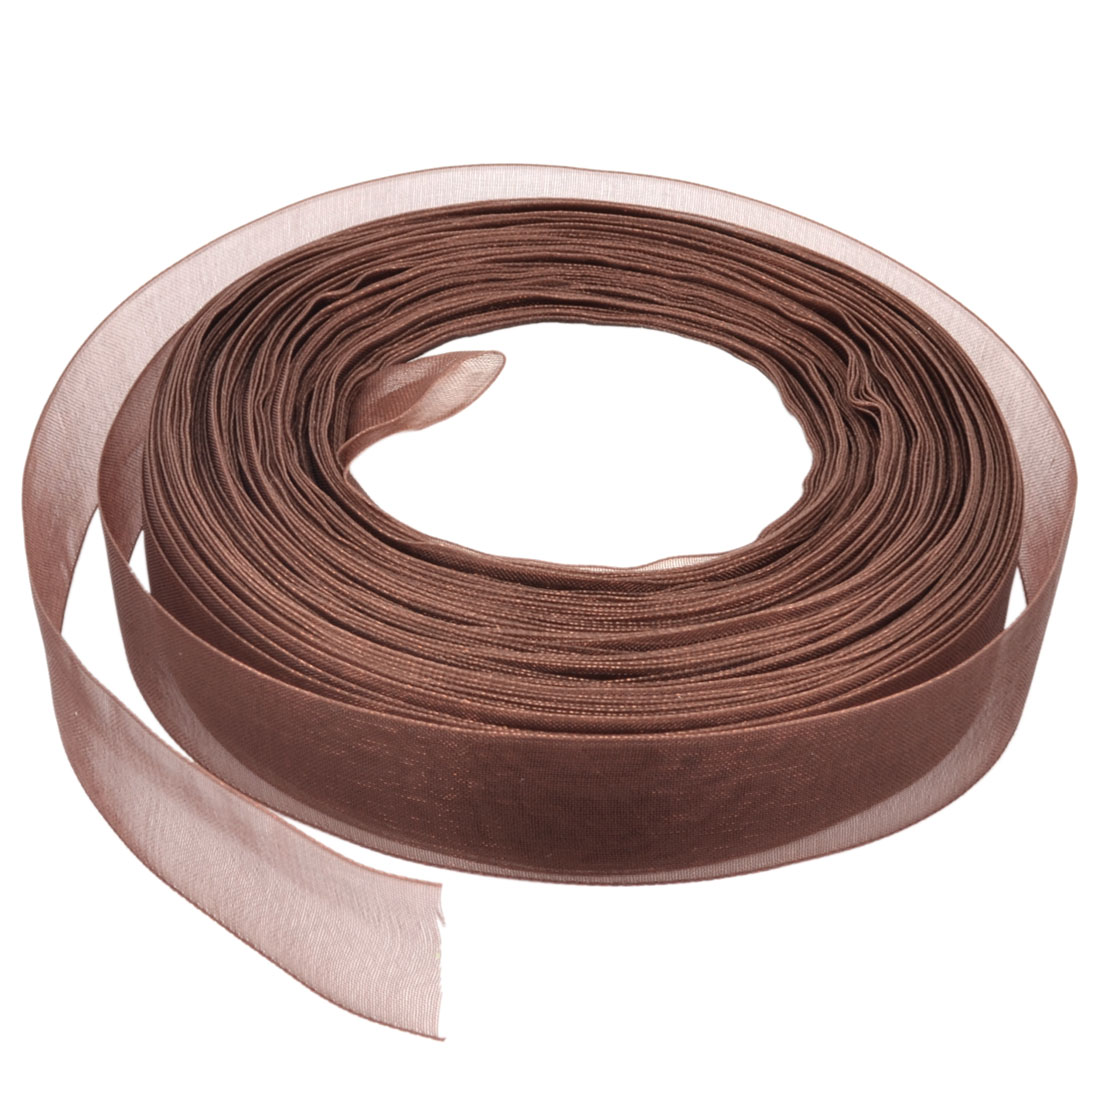 Gift Wrapping DIY Craft Festival Wedding Ornament 150 Ft 20mm Sheer Organza Ribbon Roll Tape Brown